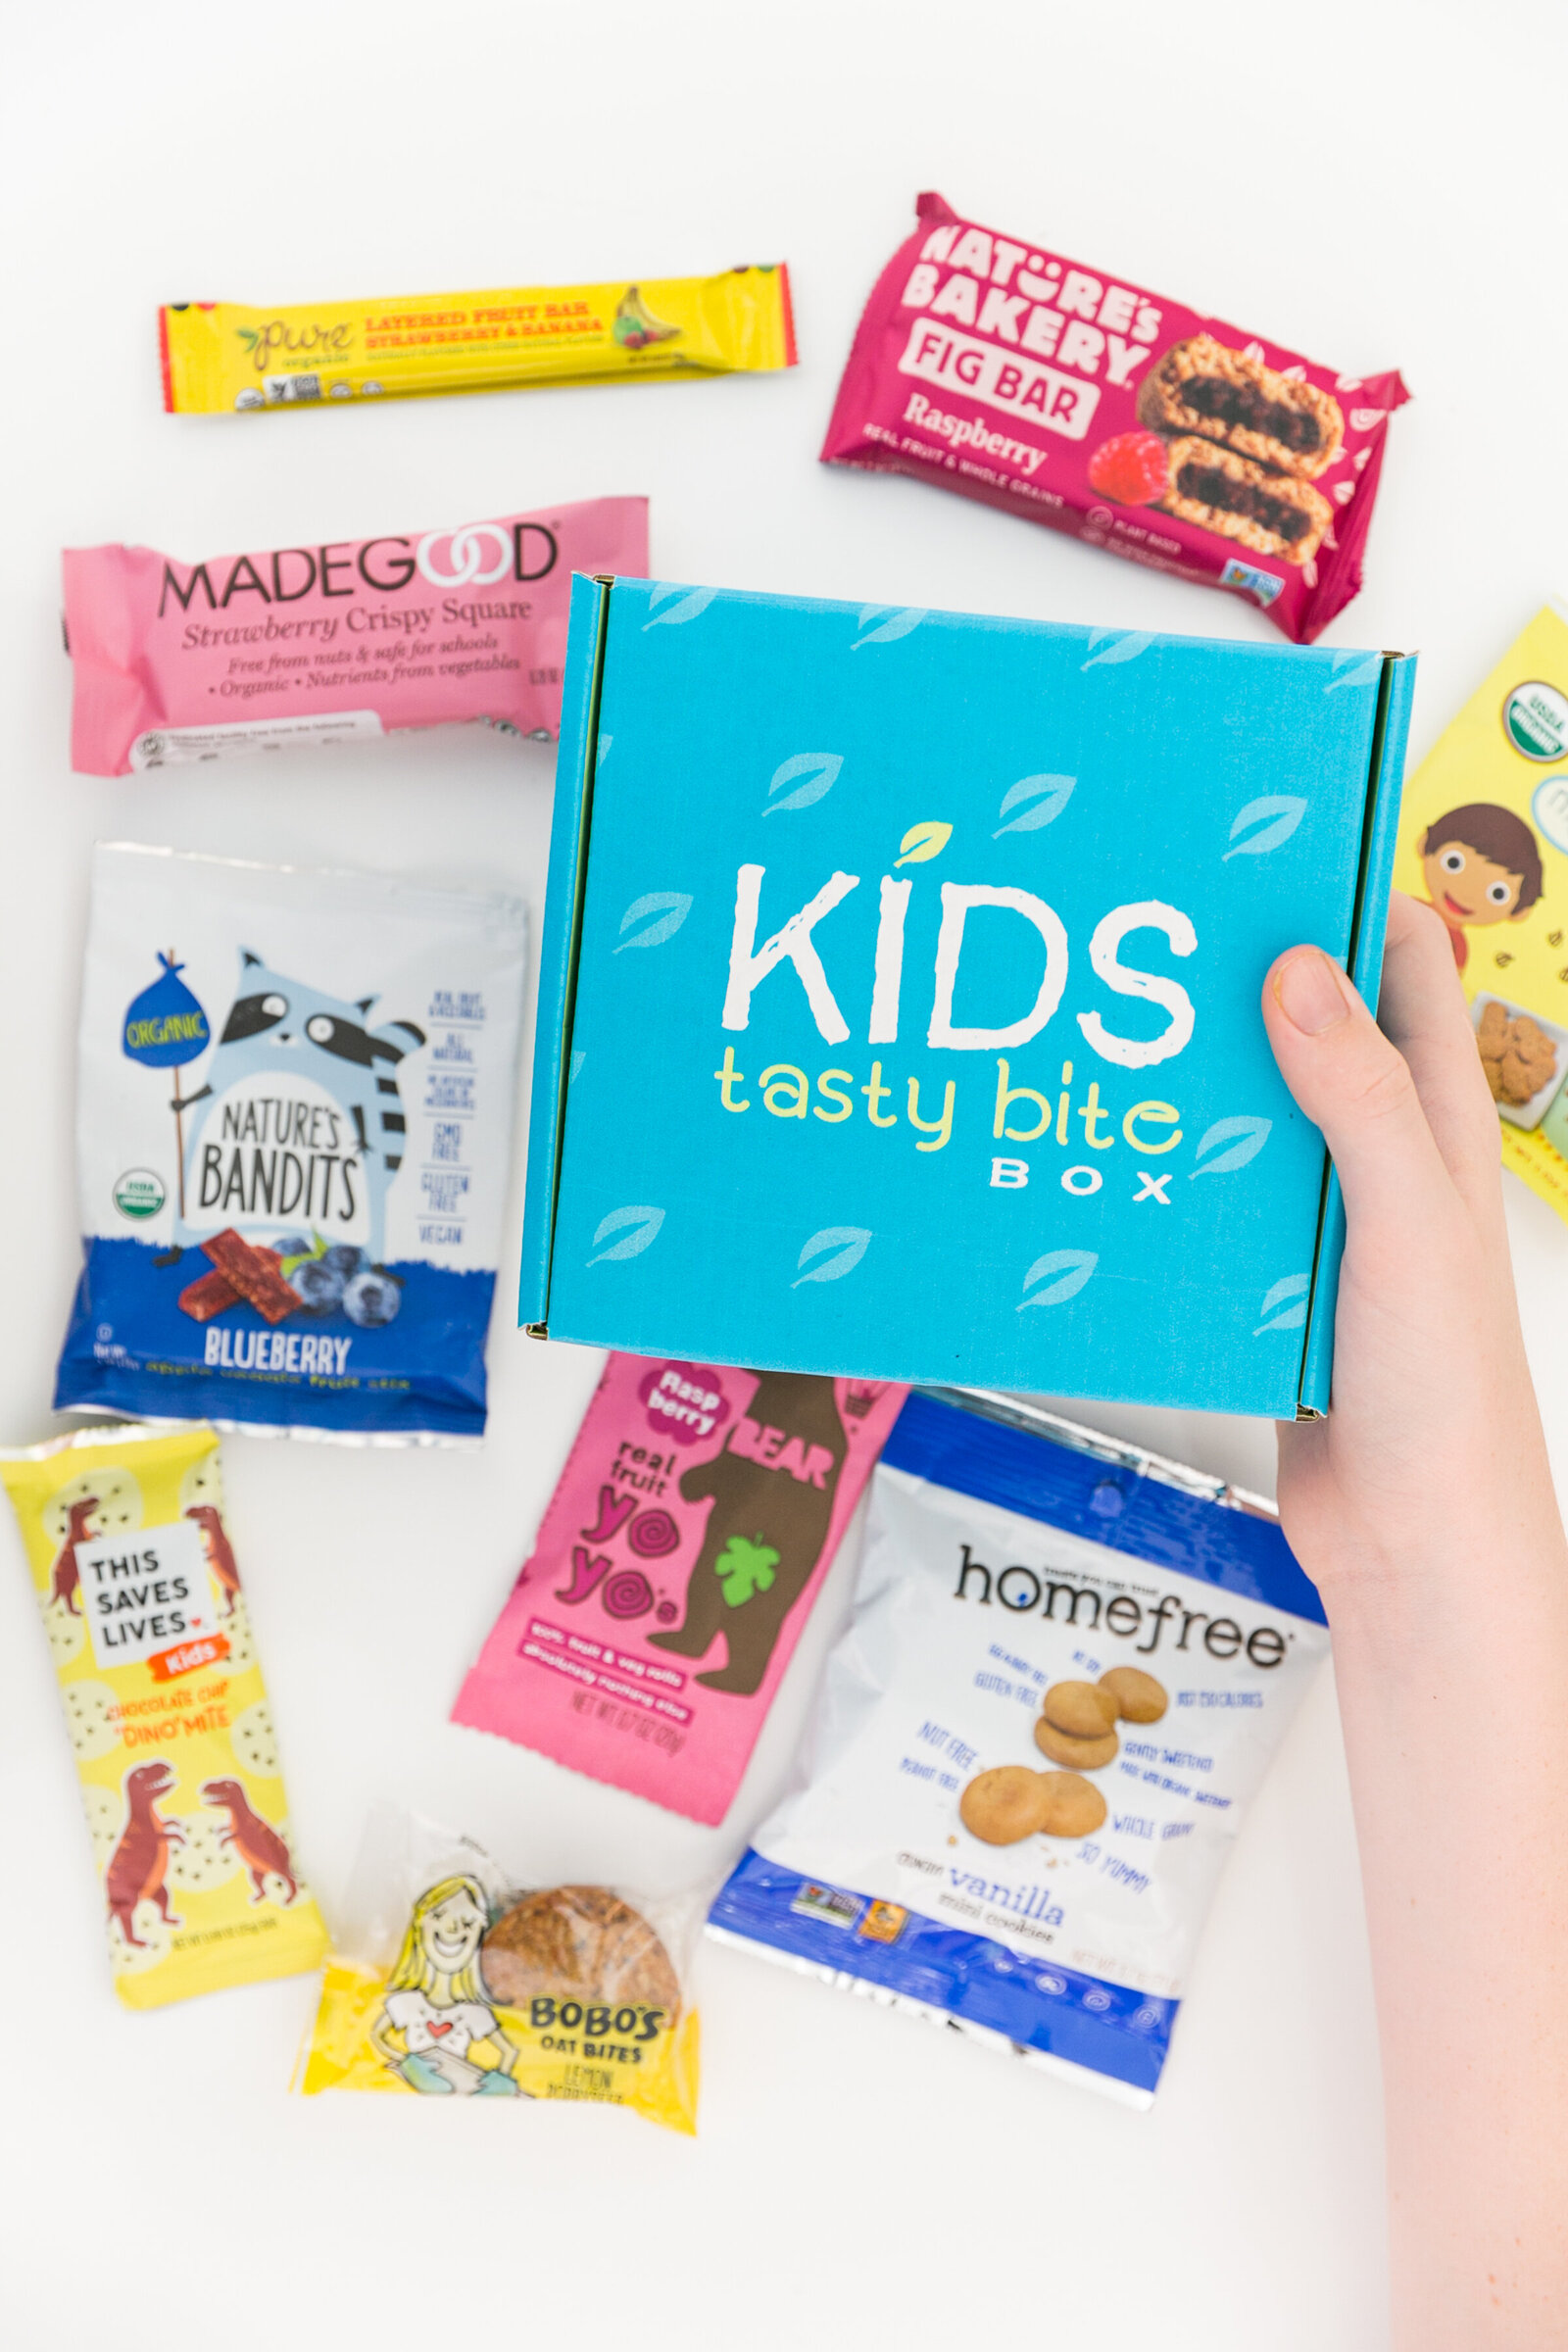 Kids tasty box images-35